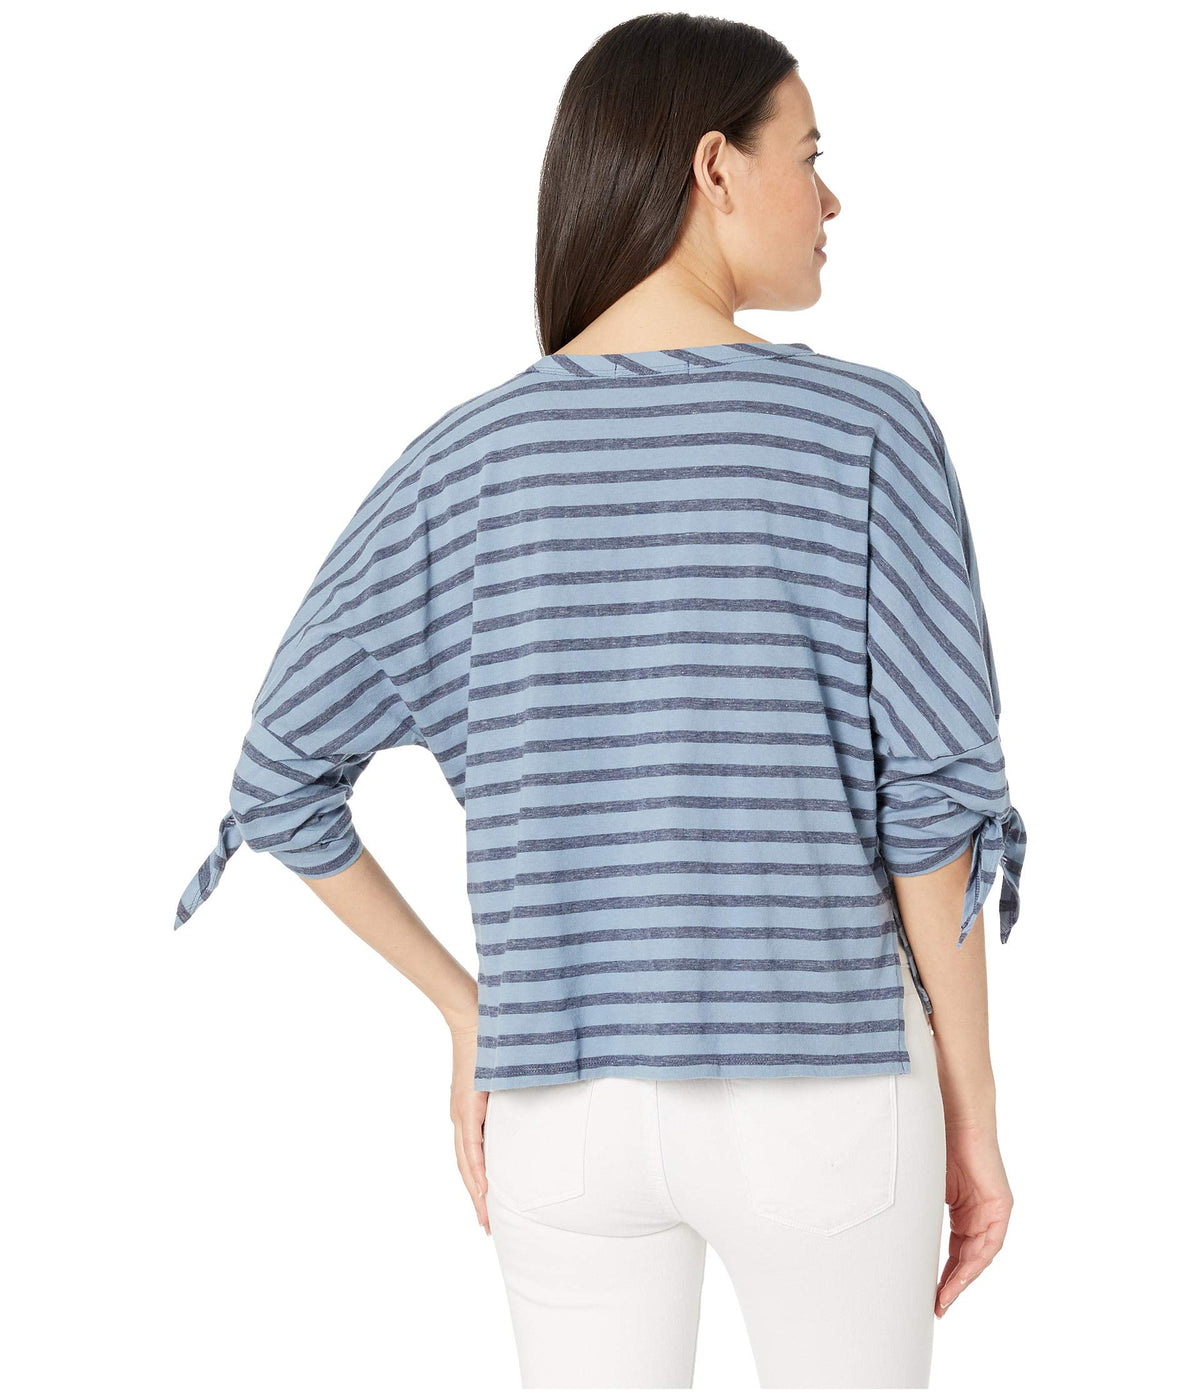 Boxy Tee with 3/4 Tie Sleeves in Two-Color Stripe